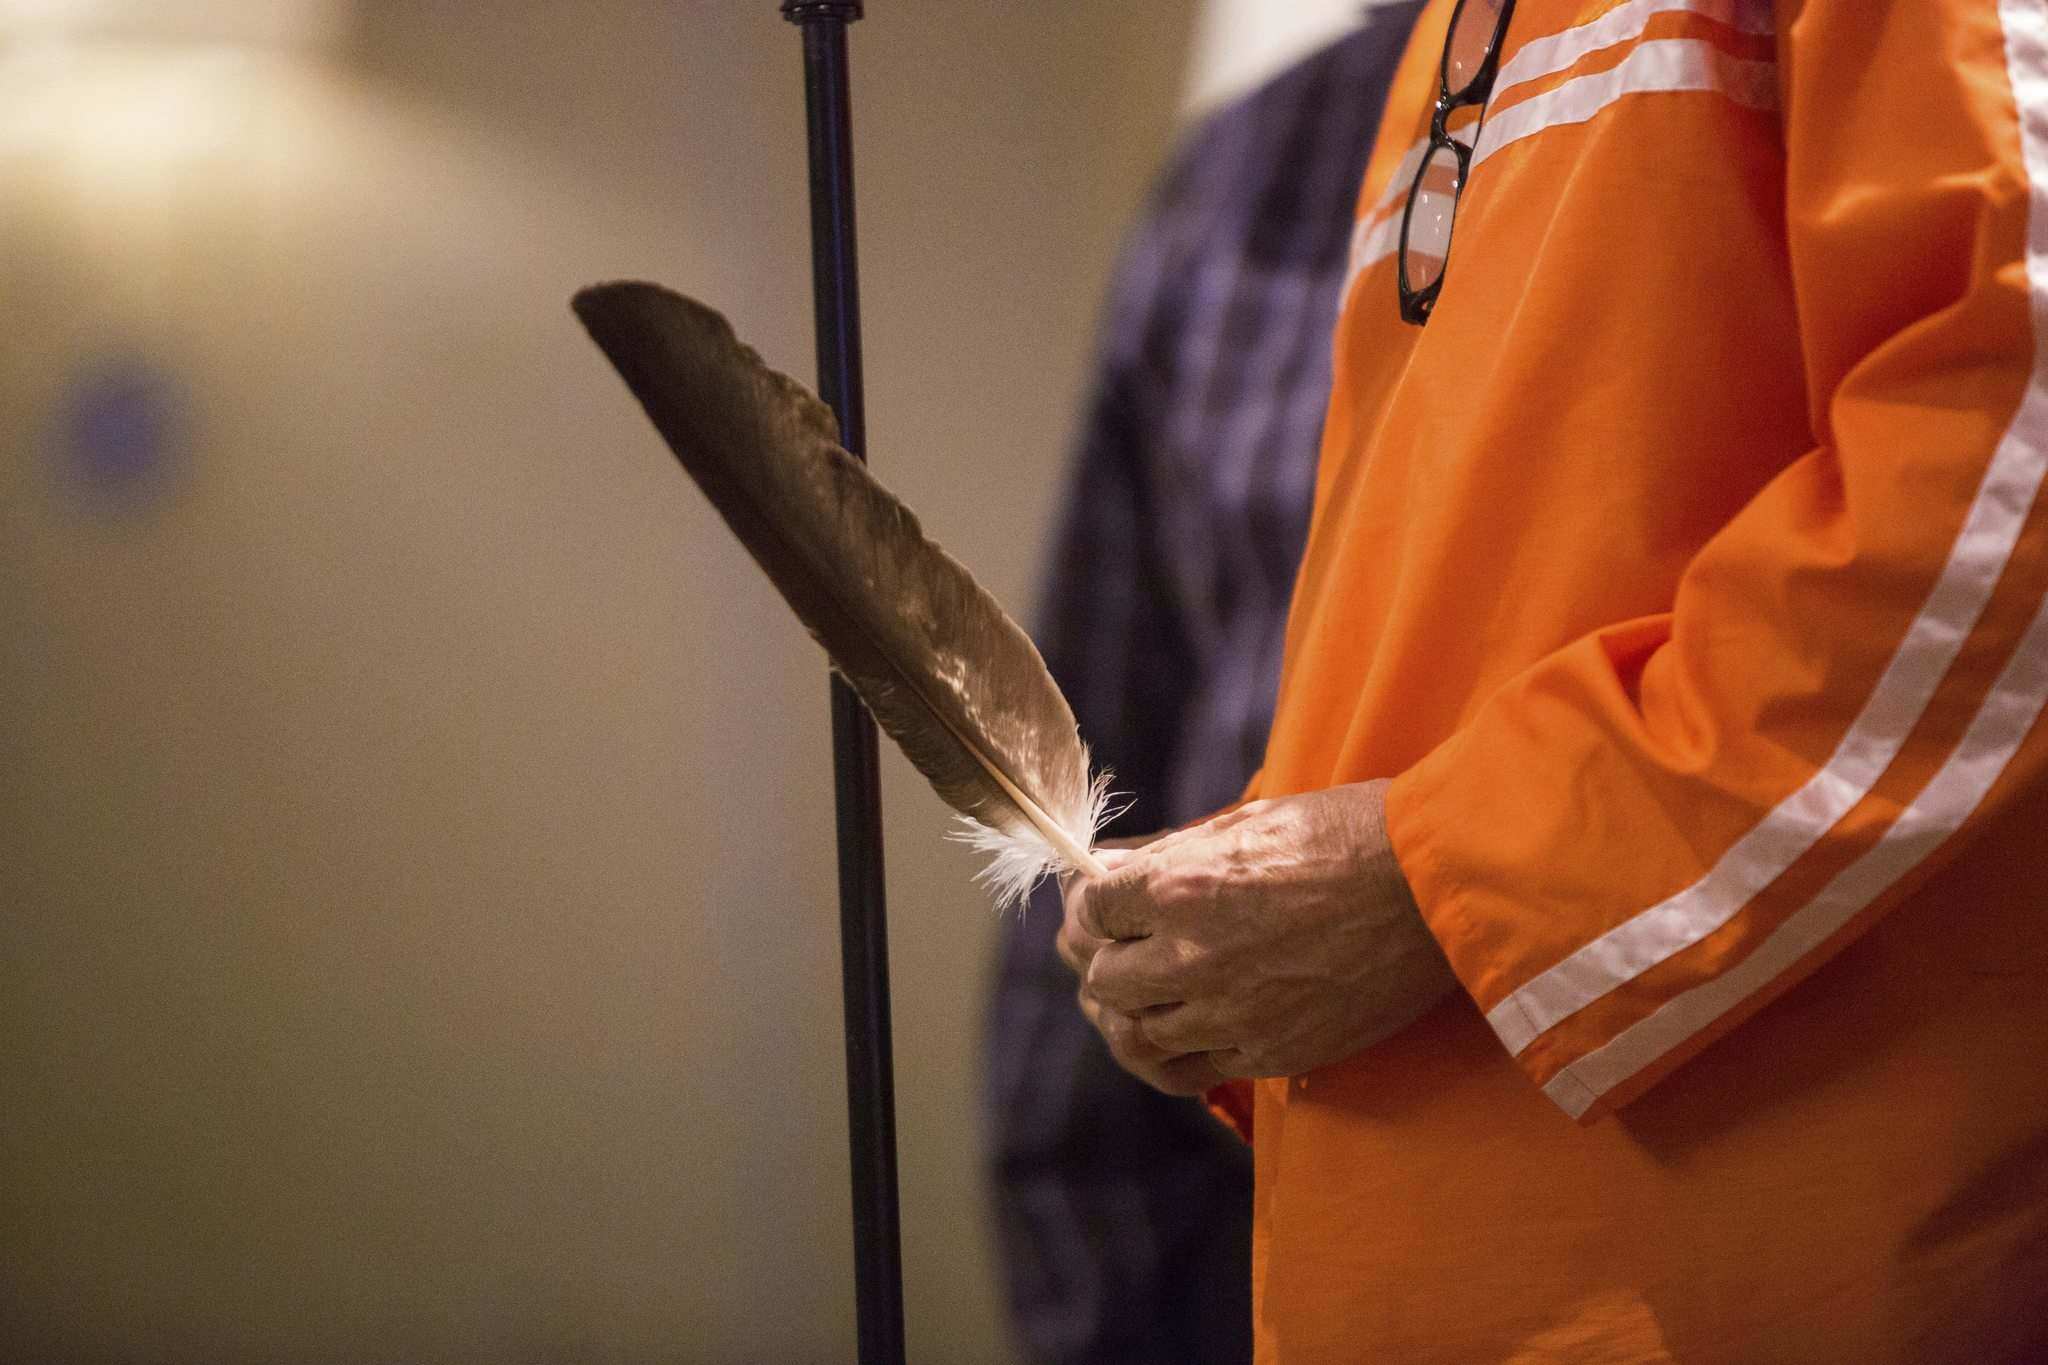 MIKAELA MACKENZIE / WINNIPEG FREE PRESS</p><p>Elder Ernie Daniels says an opening prayer at the Maamiikwendan Gathering at the Fairmont Winnipeg on Wednesday.</p>